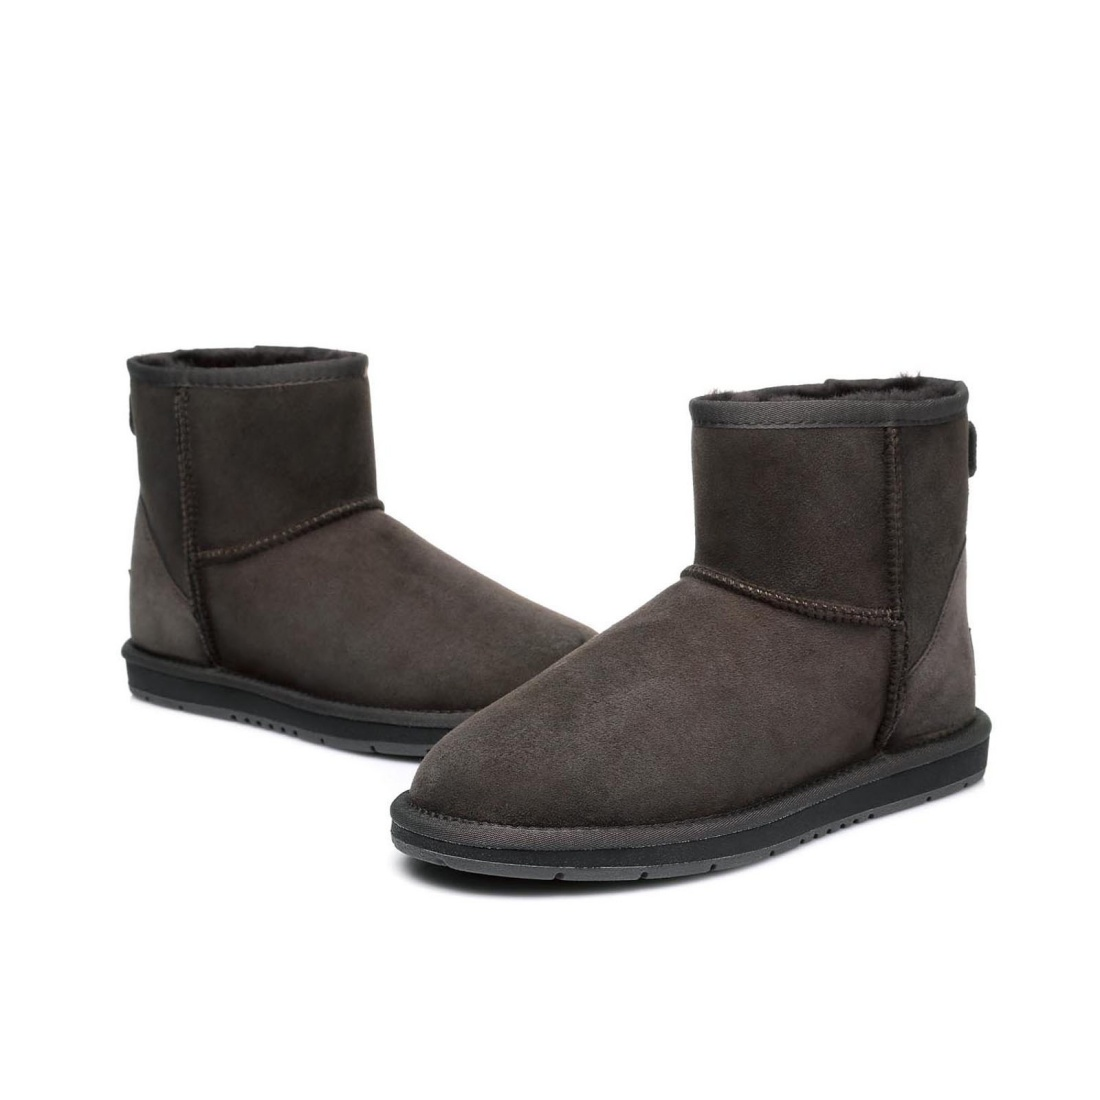 UGG Ankle Boots Mini - Chocolate - AU Women 7 / Men 5